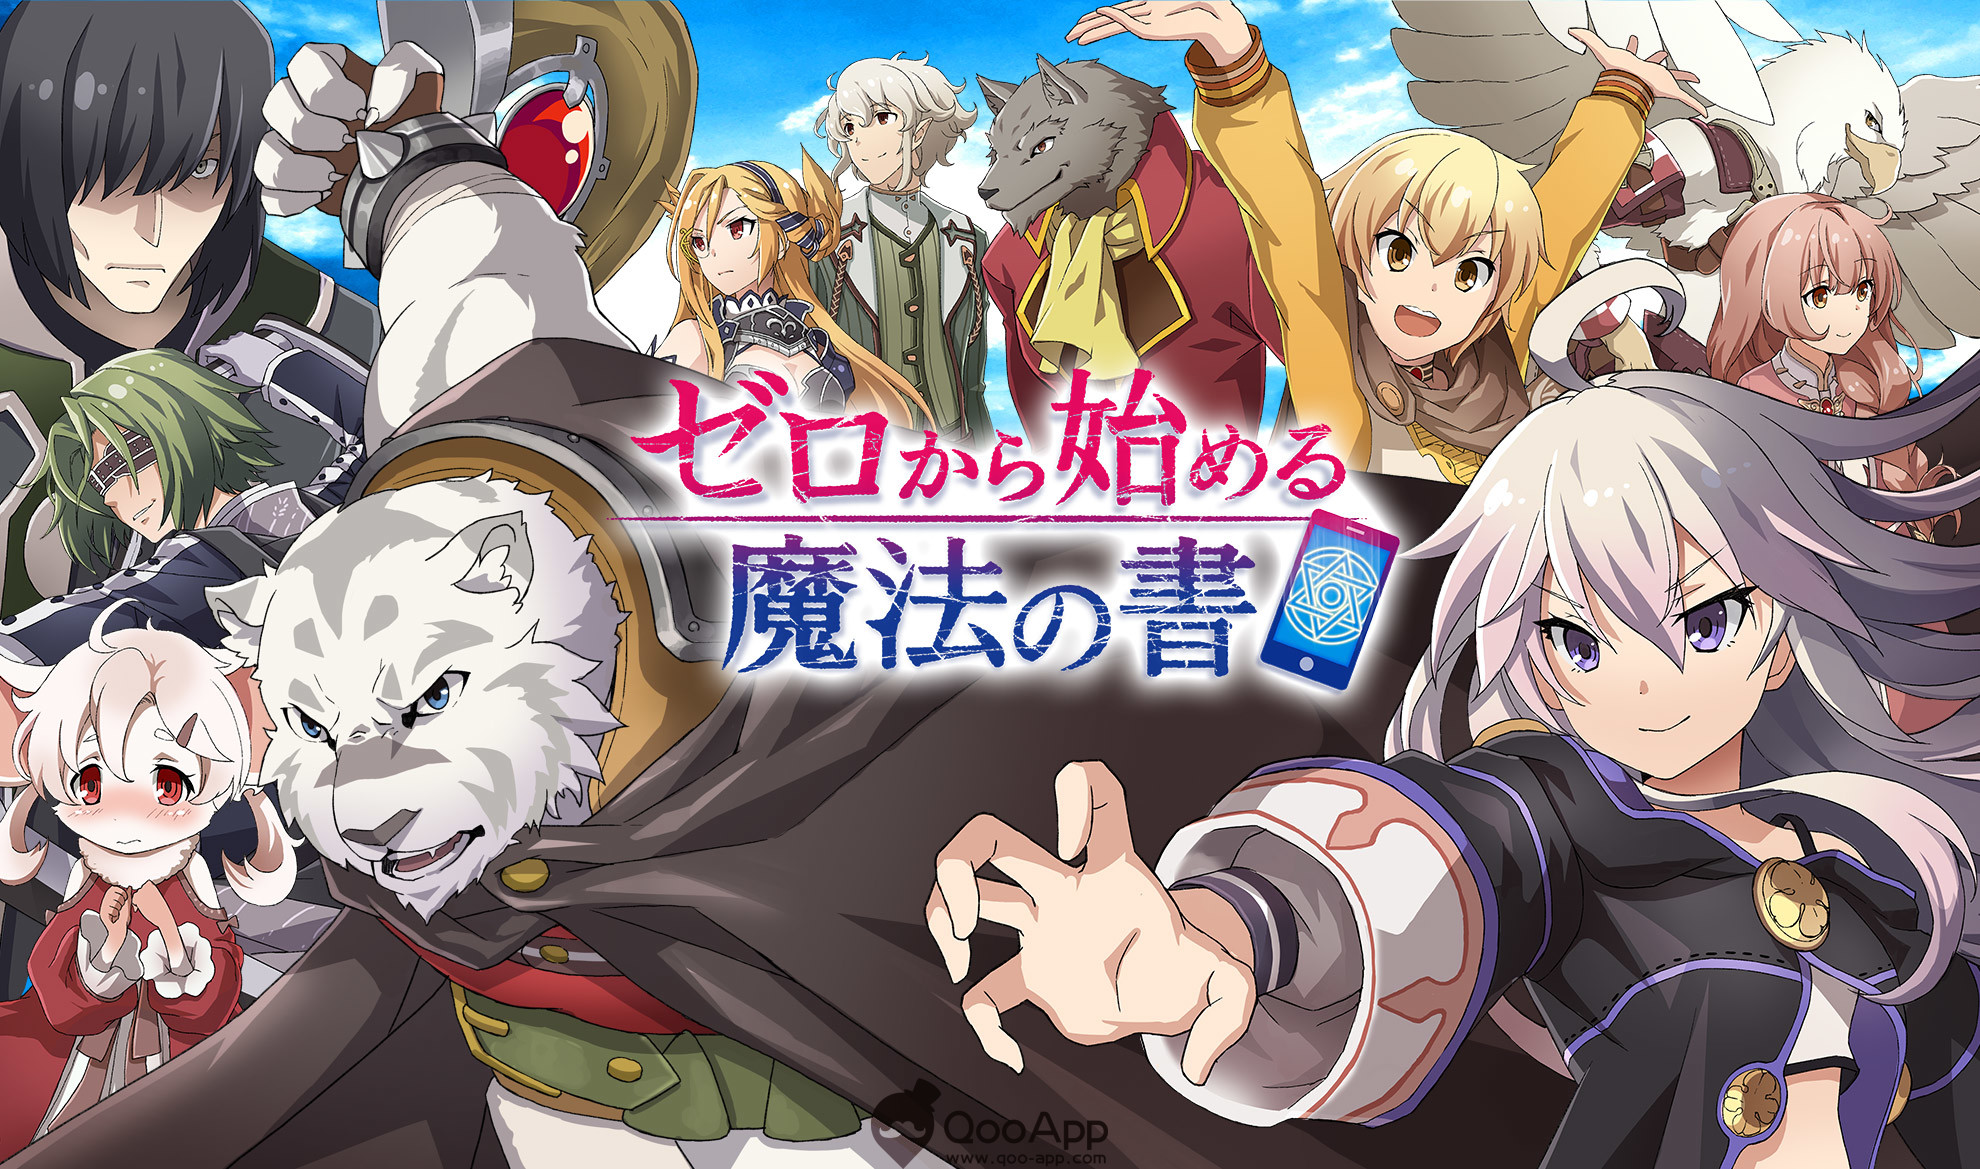 Qoo News] Light novel Grimoire of Zero's mobile RPG is now available